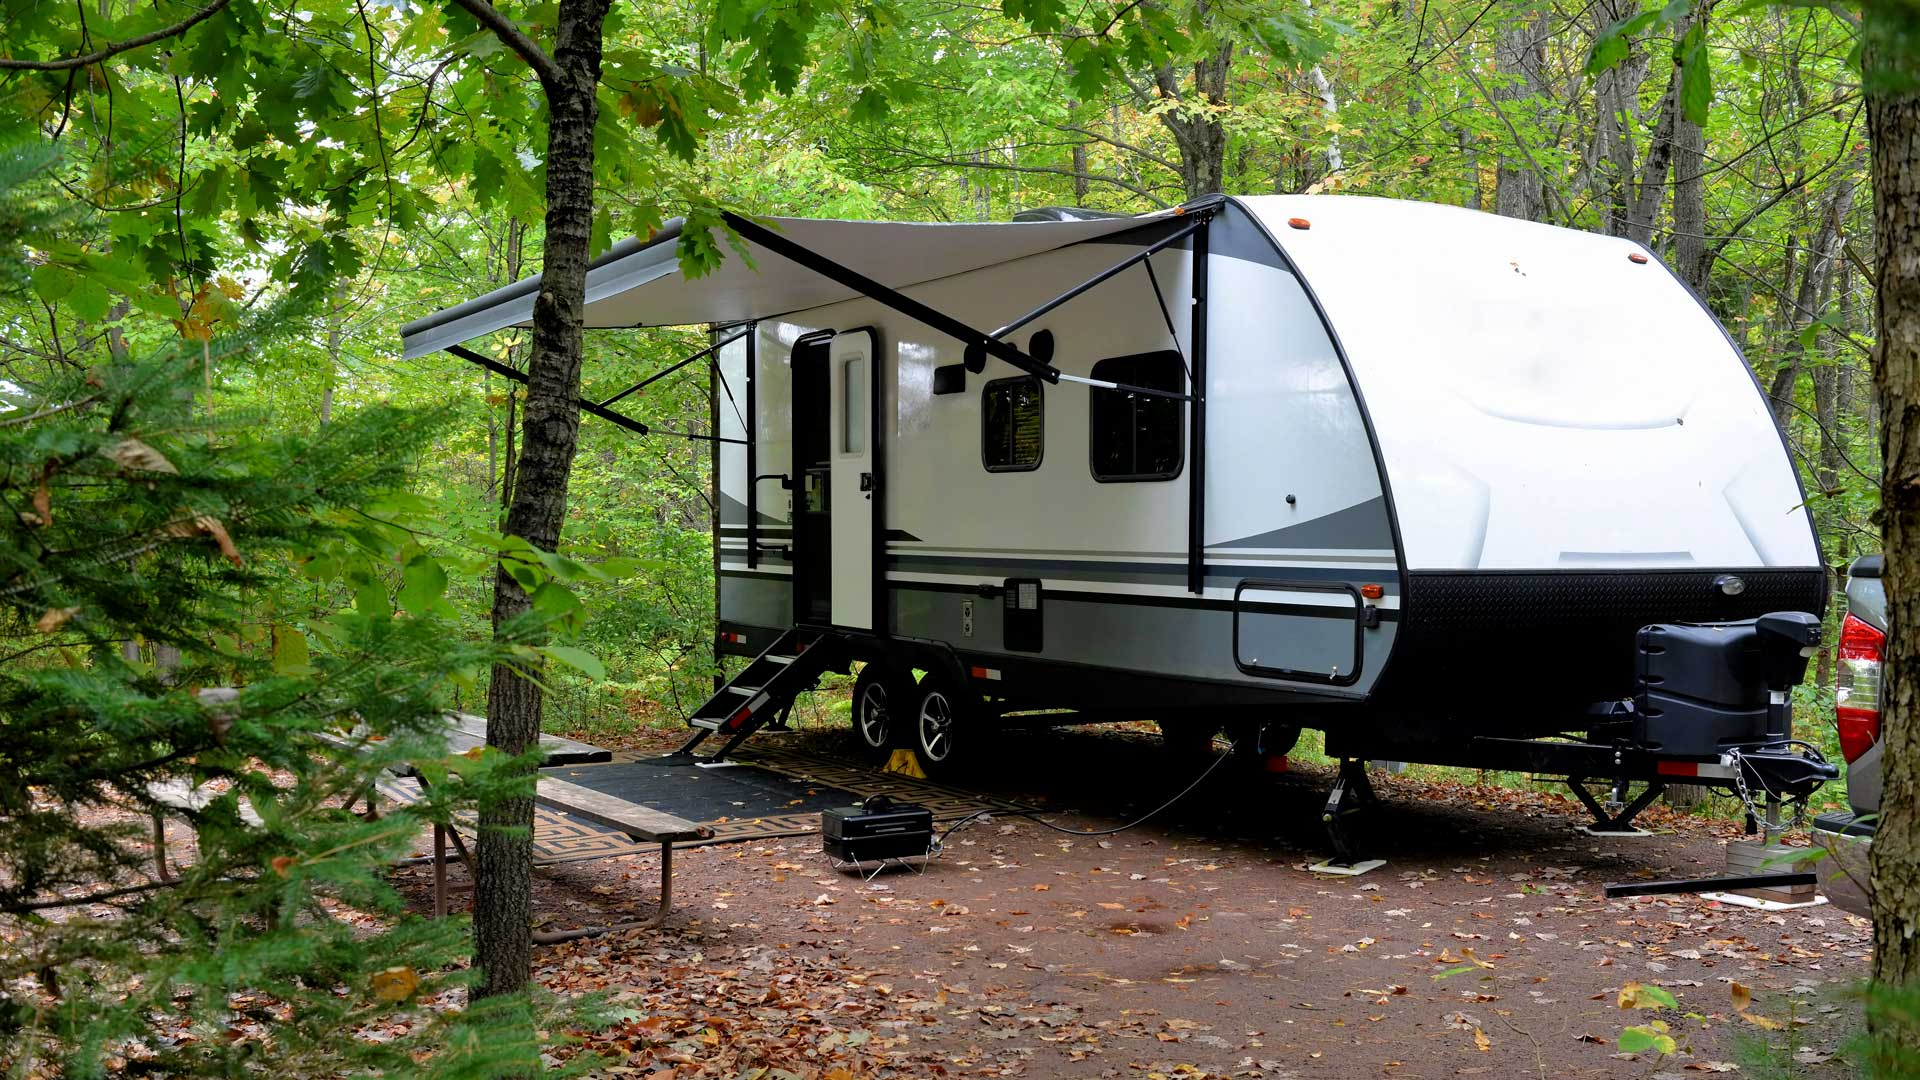 Camping trailer insurance from April Insurance Agency in San Francisco California